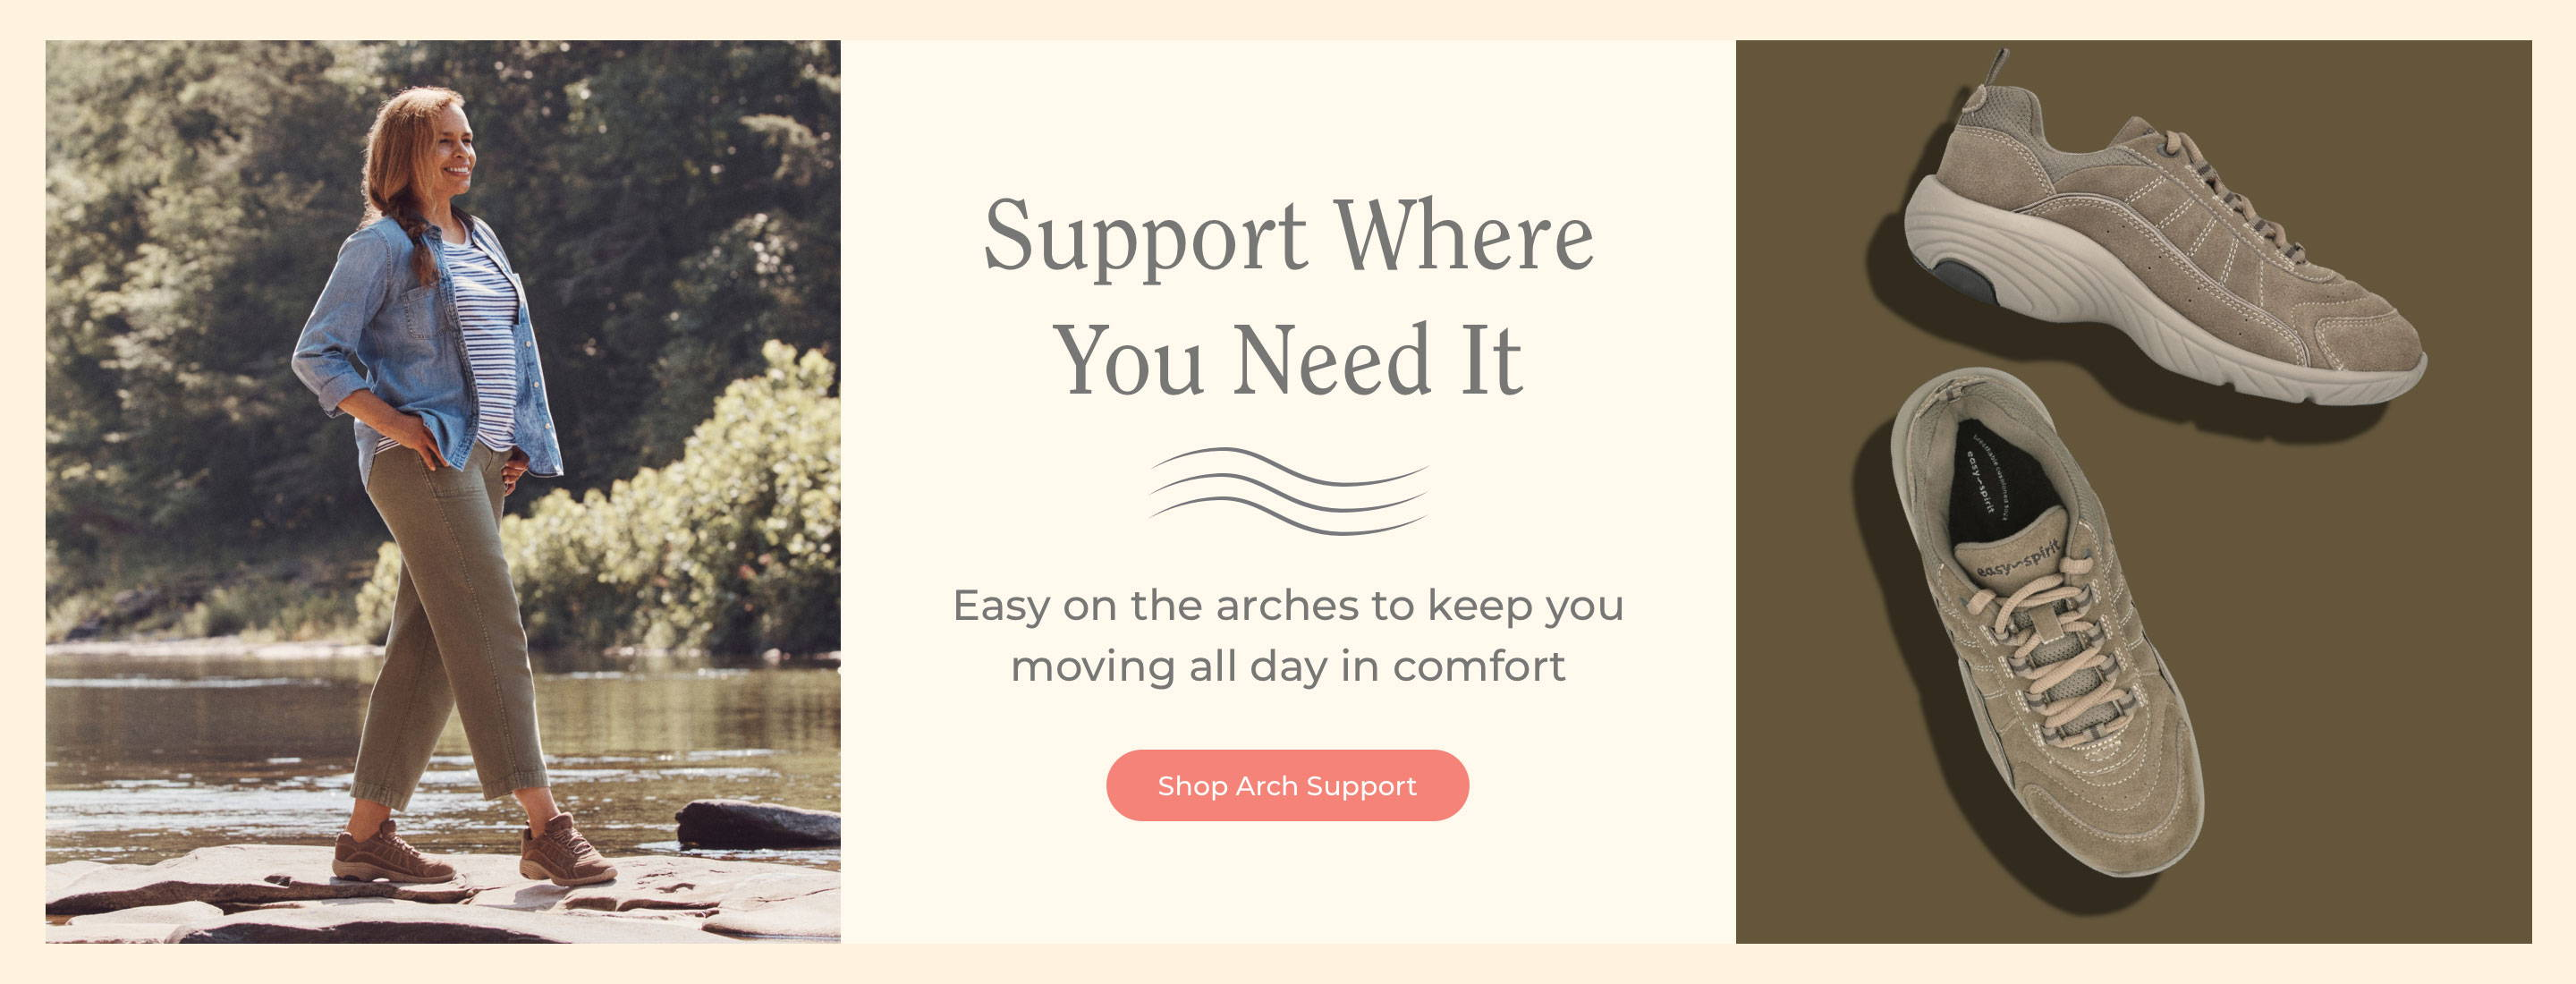 Shop Arch Support